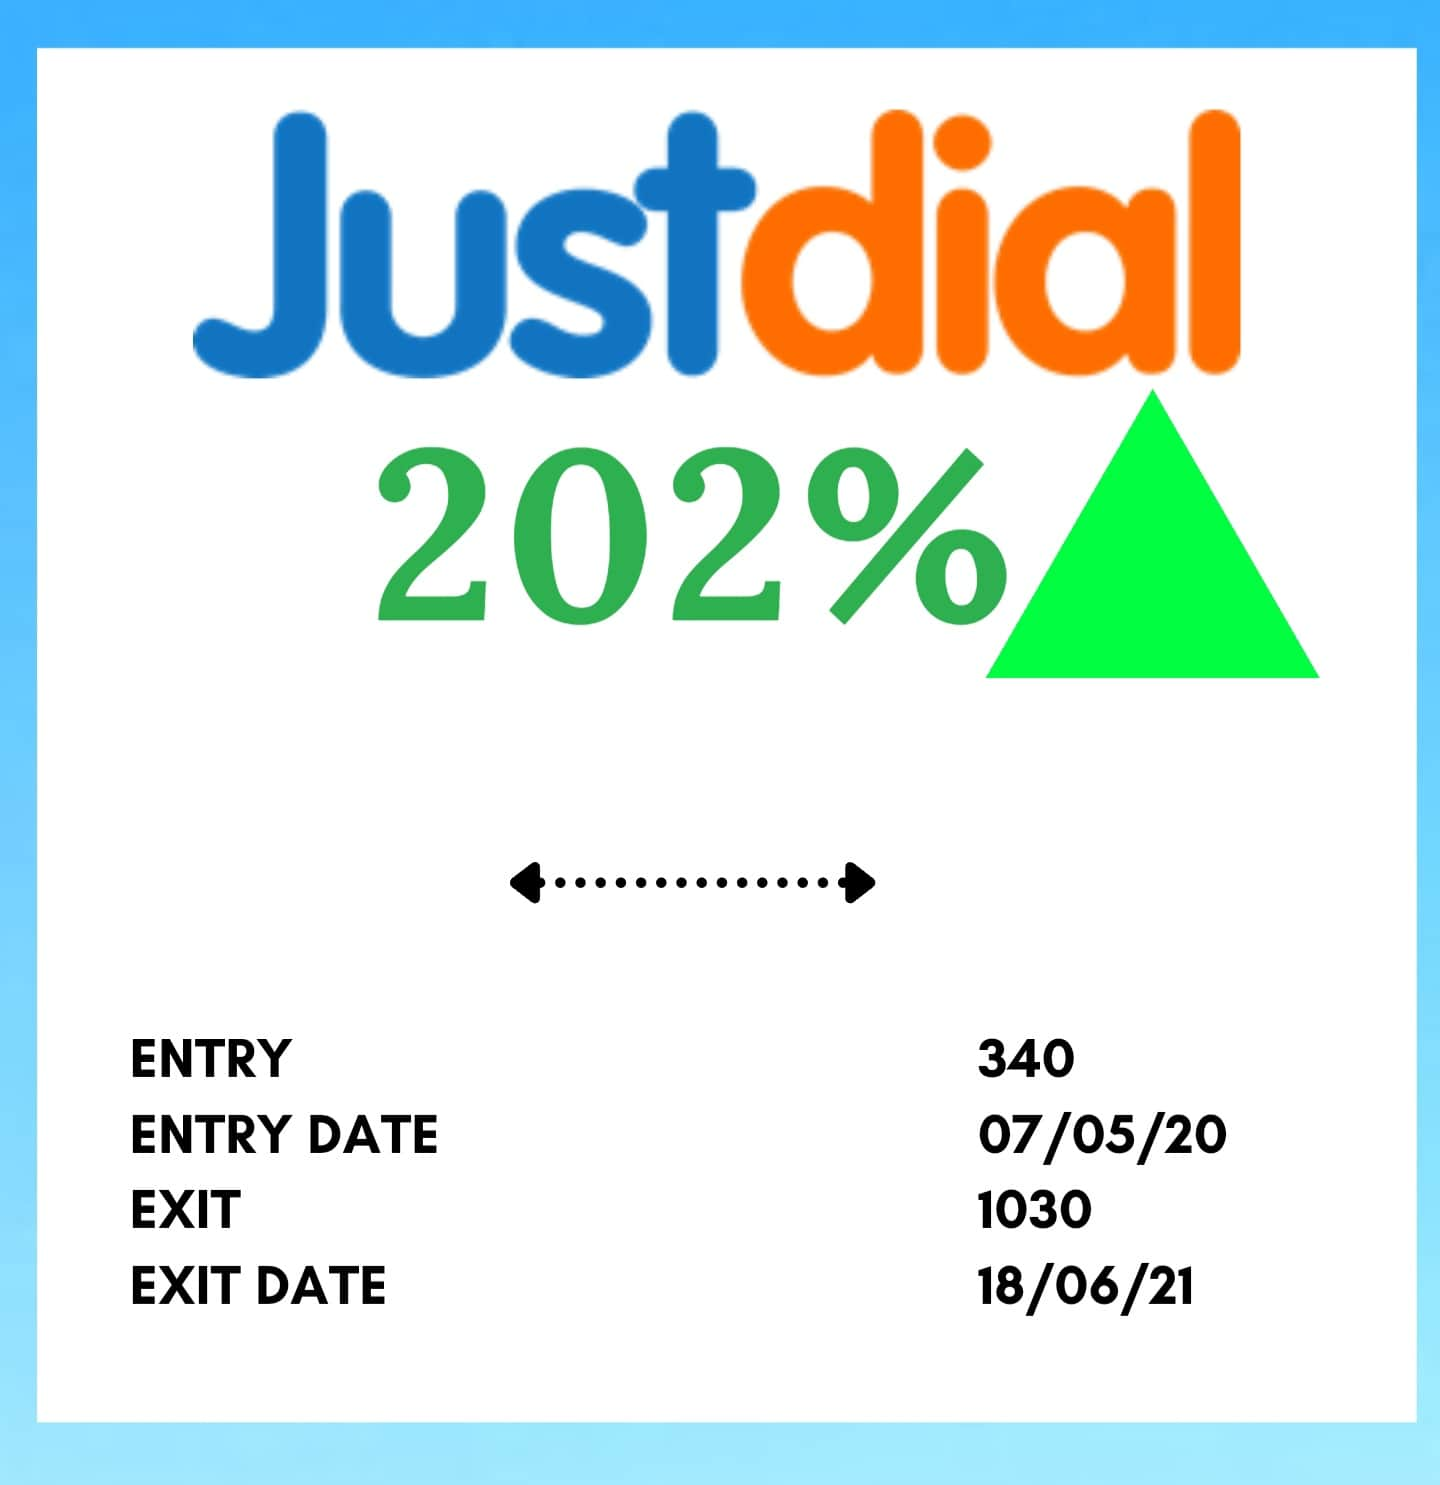 LONG-TERM SERVICES JUSTDIAL